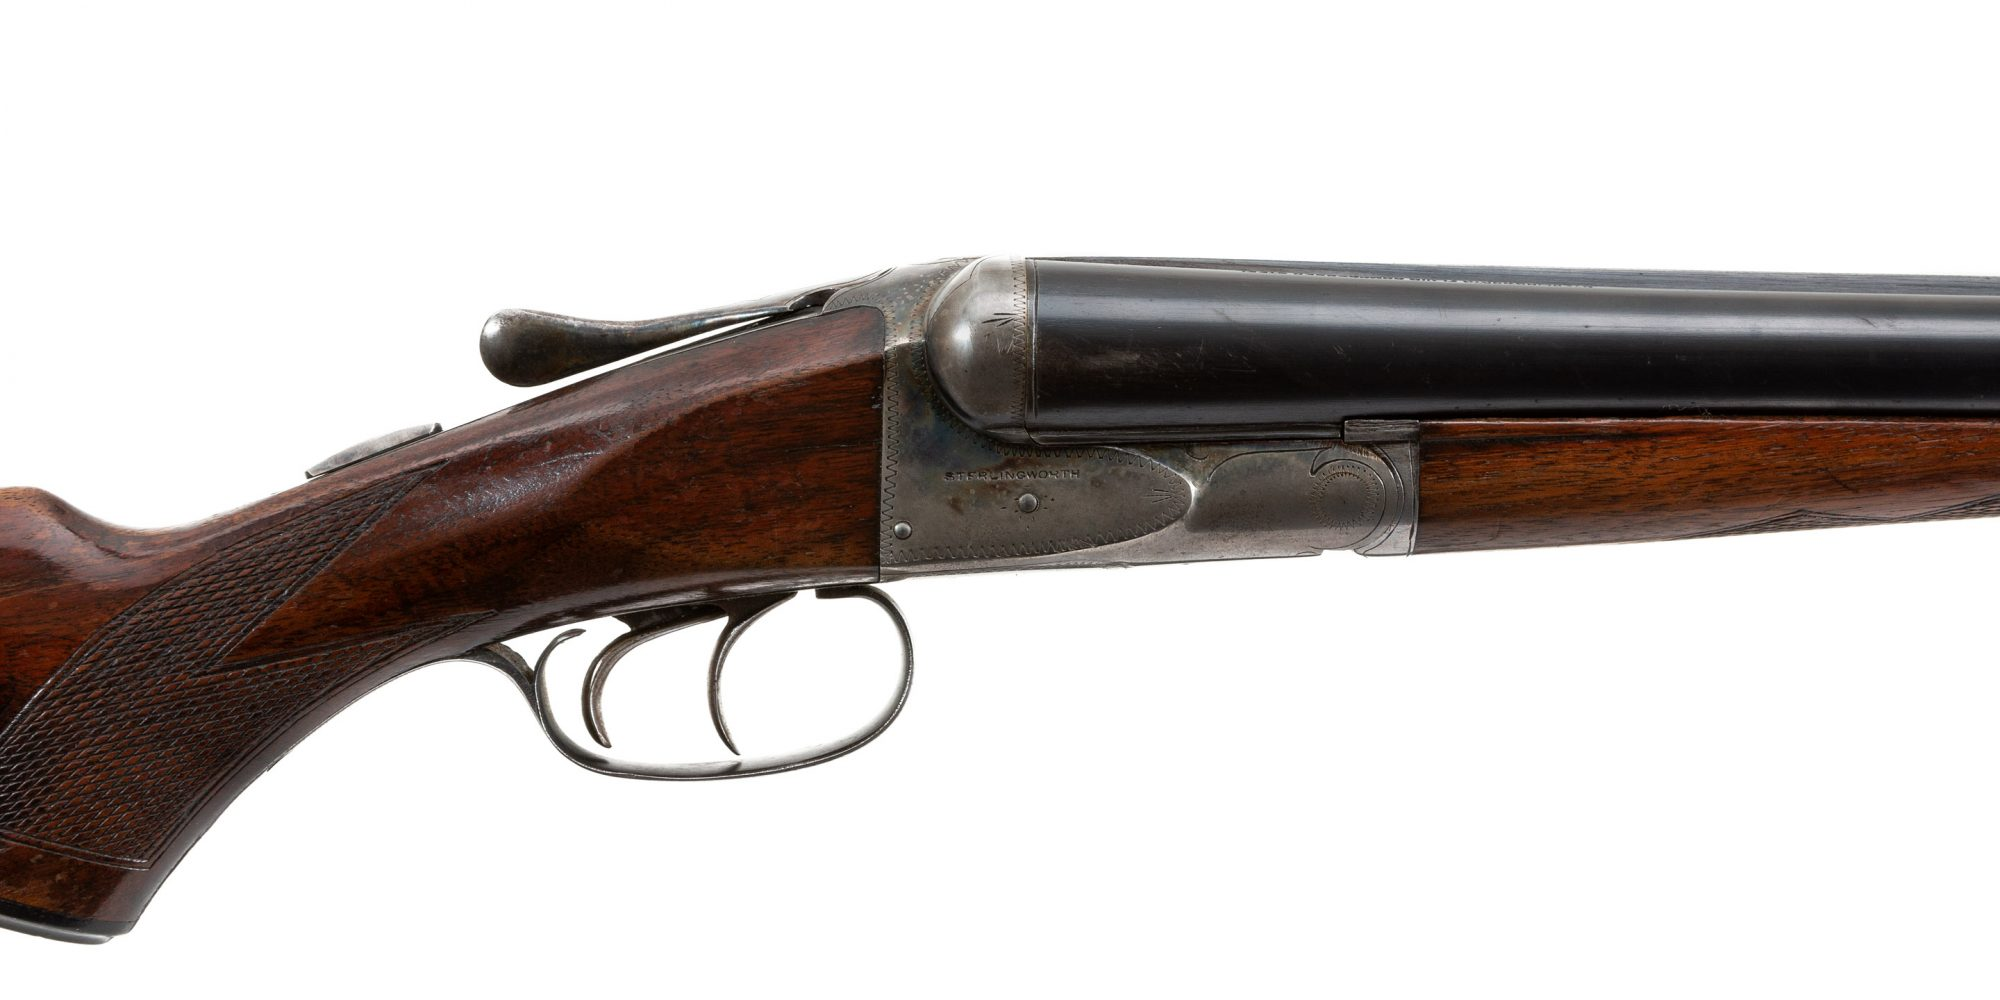 Photo of a pre-owned Fox Sterlingworth 12 gauge double gun from from circa 1943-45, for sale by Turnbull Restoration of Bloomfield, NY